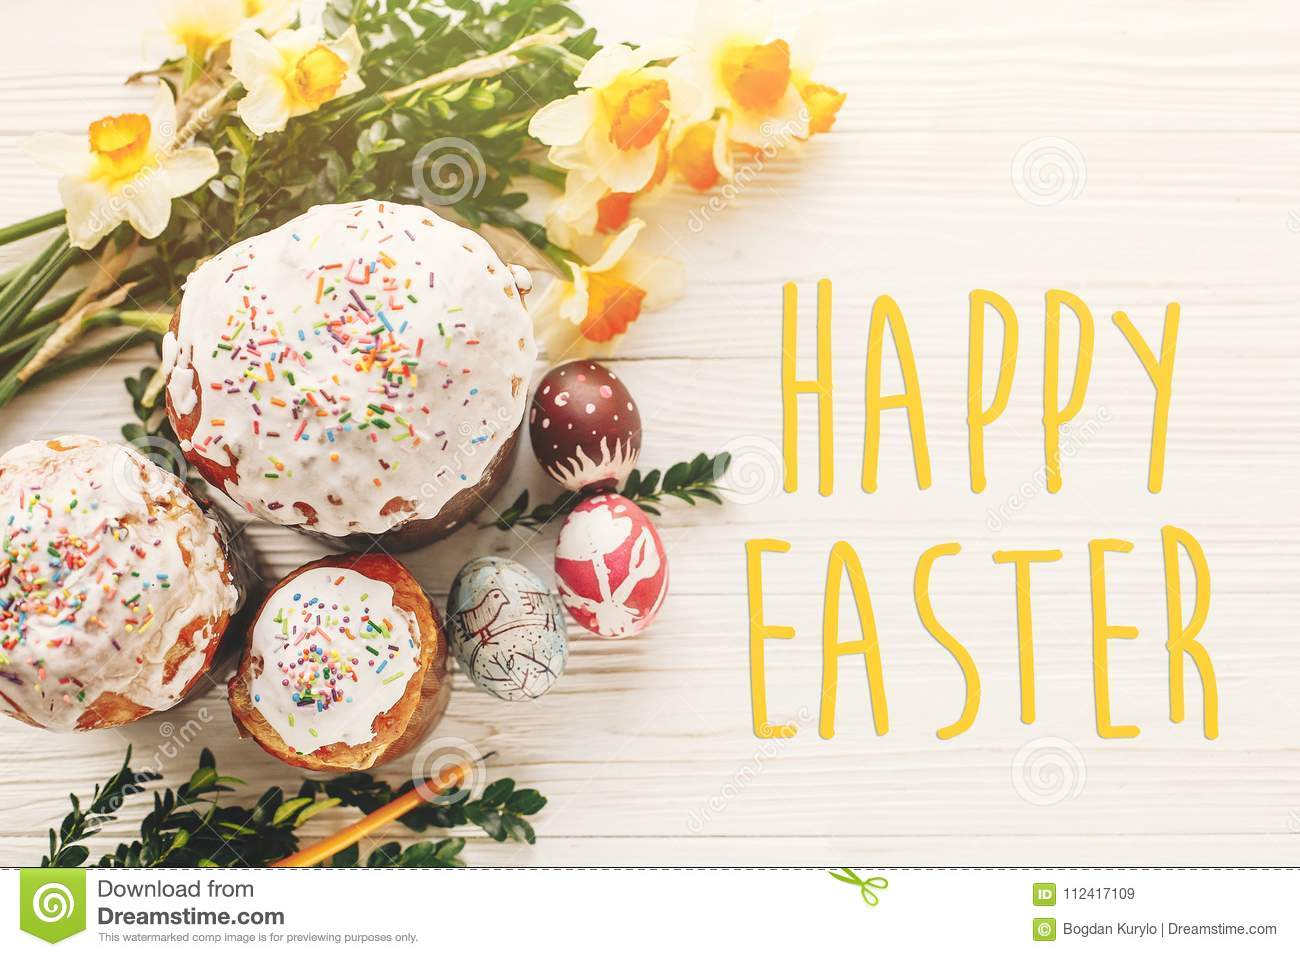 Happy Easter Text Seasons Greetings Card Delicious Easter Cak